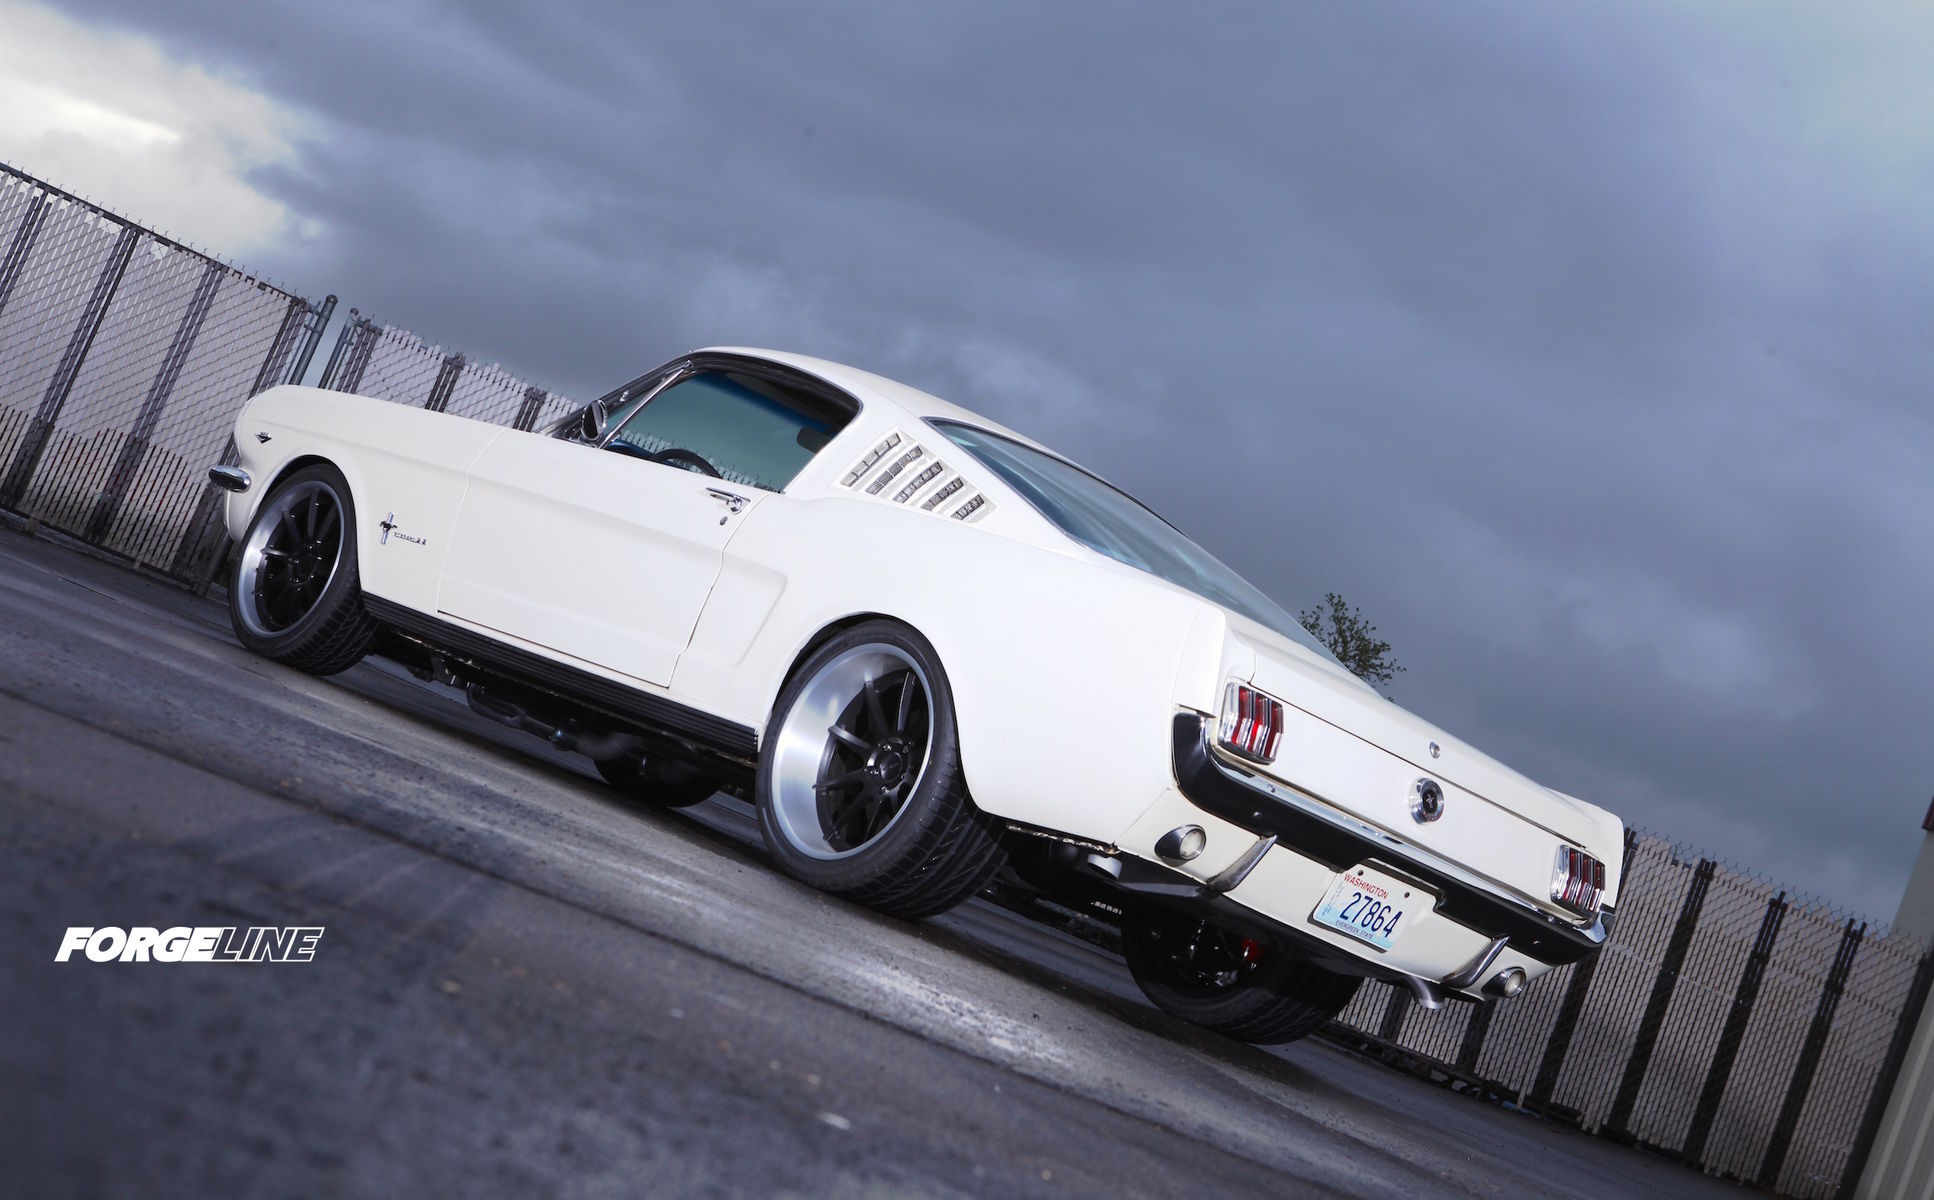 1965 Ford Mustang | Metalworks 1965 Ford Mustang Fastback on Forgeline RB3C Wheels